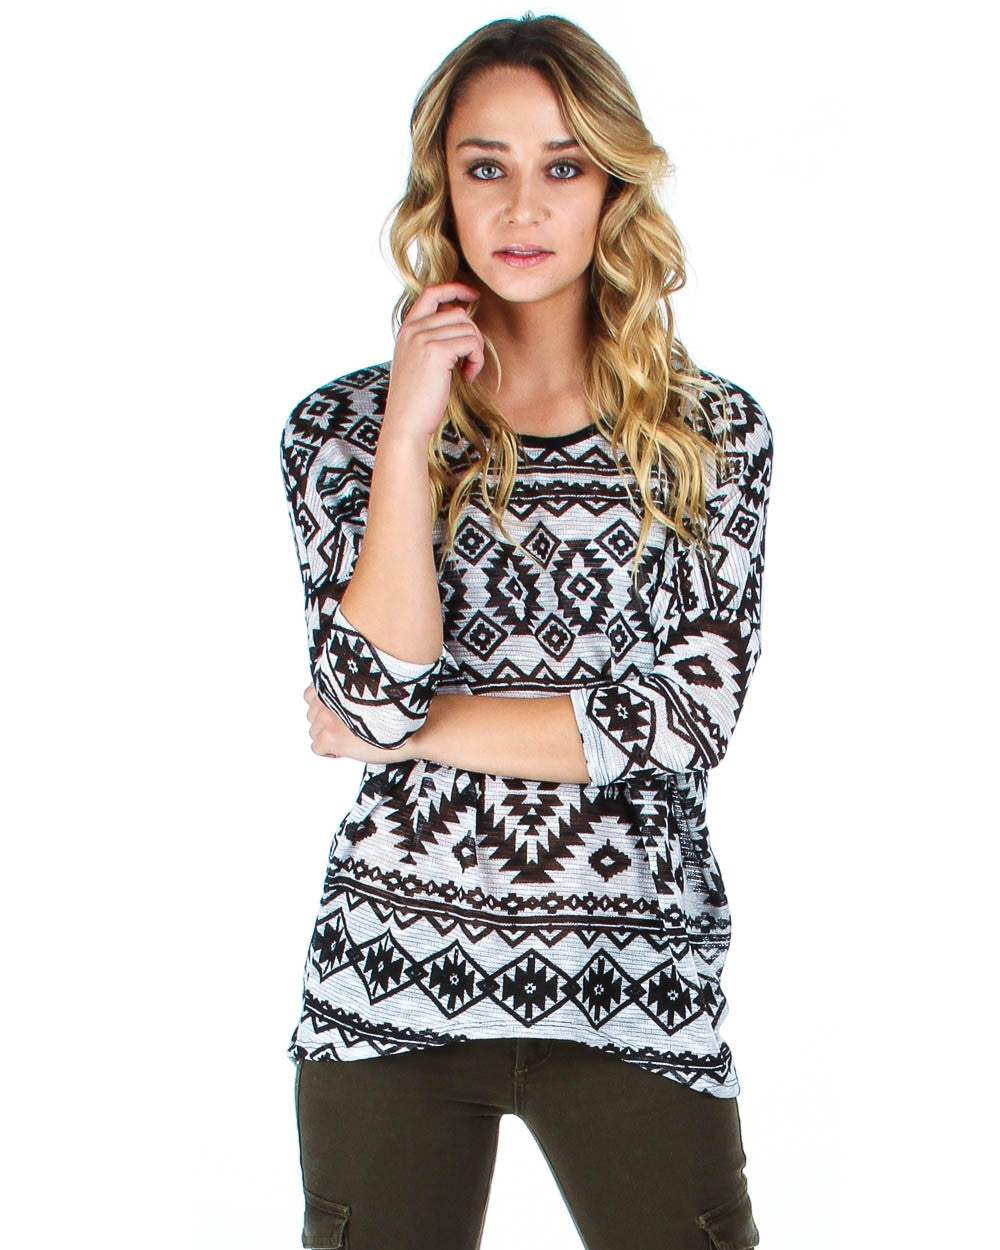 French Terry Aztec Patterned Top In Ivory